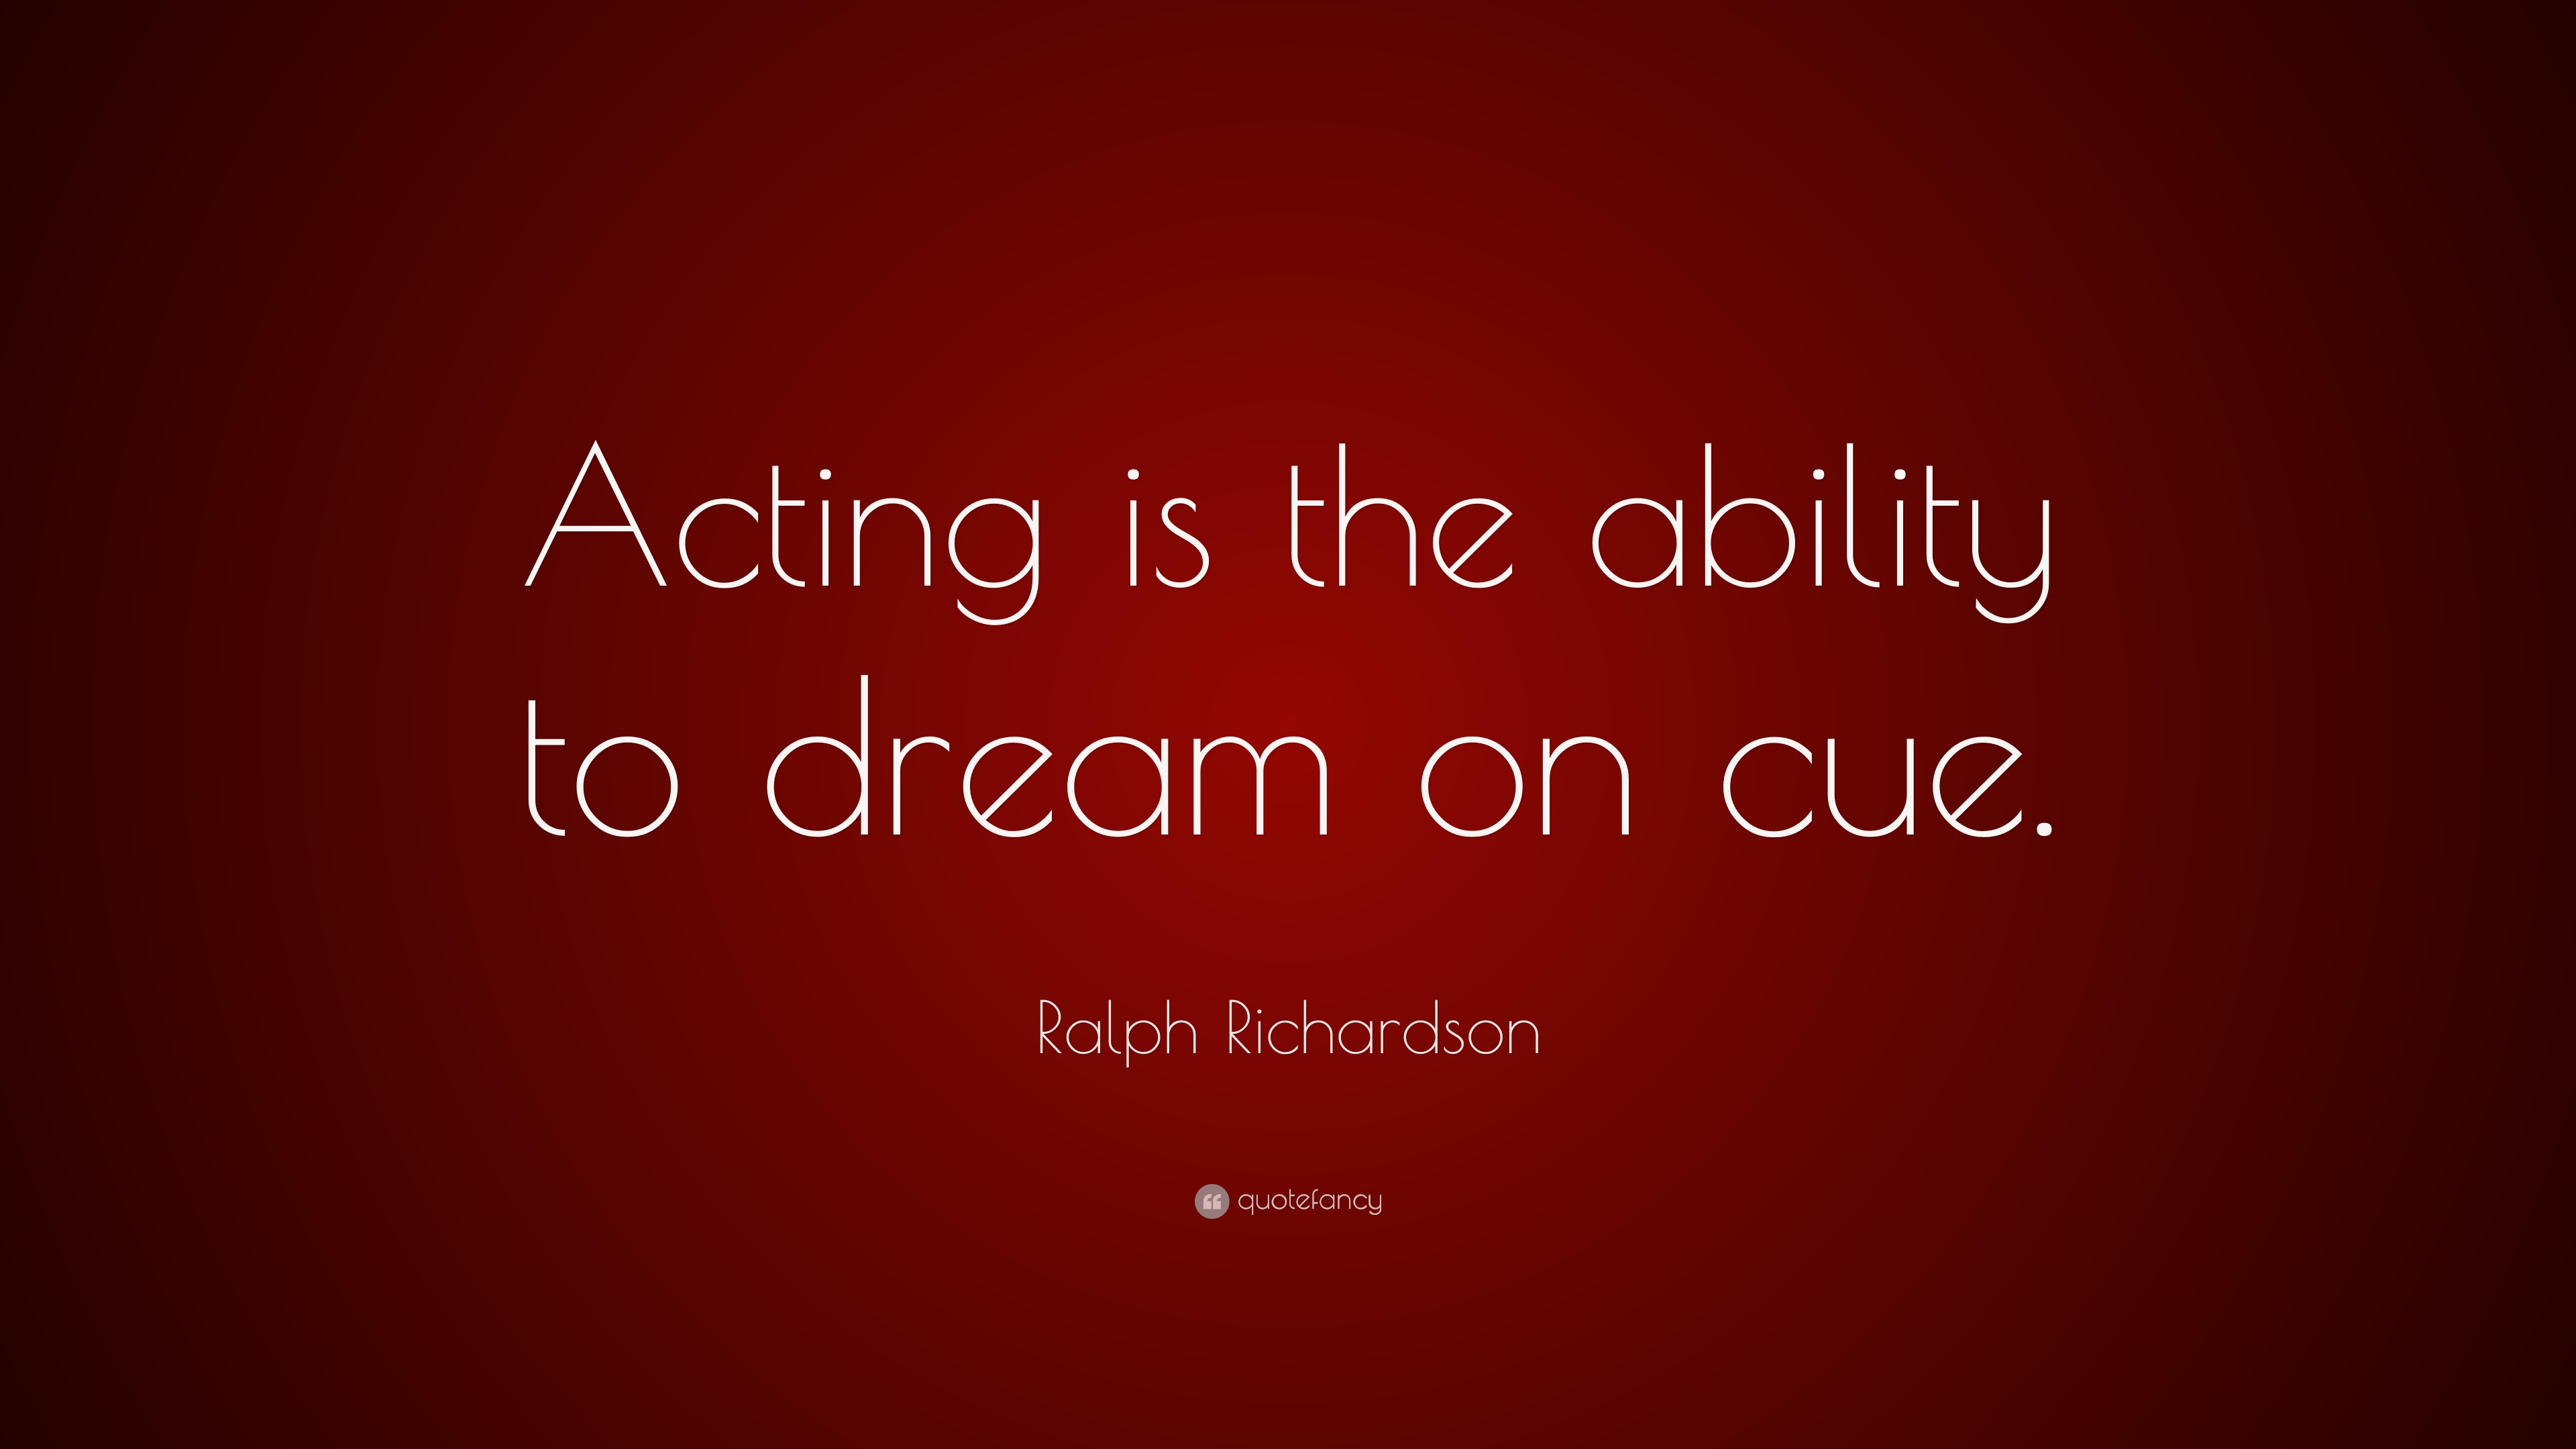 Steve Jobs Motivational Quotes Wallpaper Ralph Richardson Quote Acting Is The Ability To Dream On